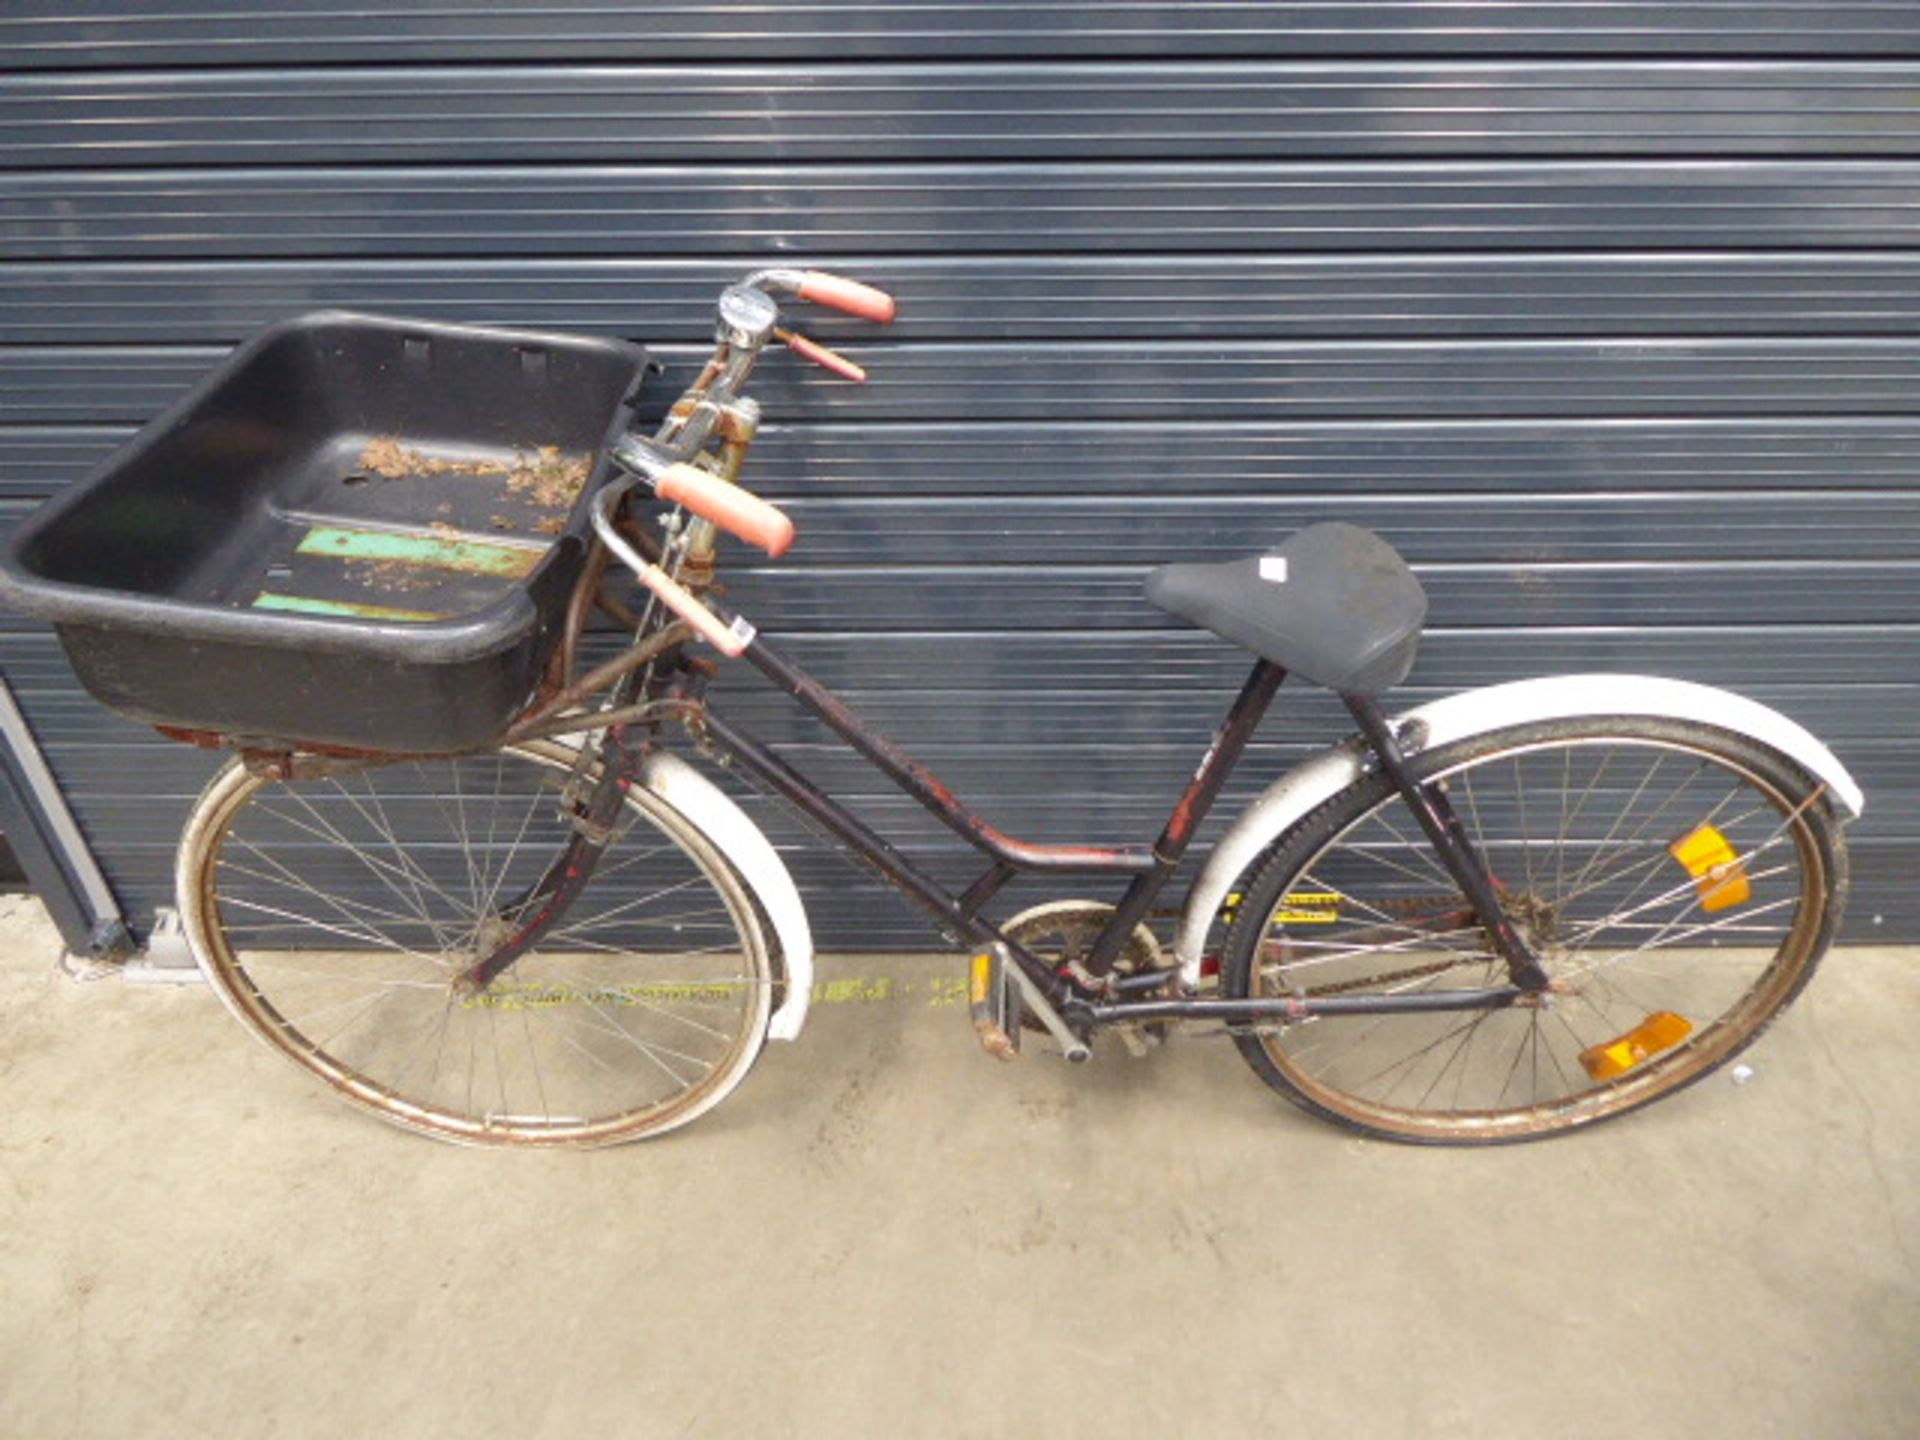 Lot 4040 - Vintage postman's style cycle